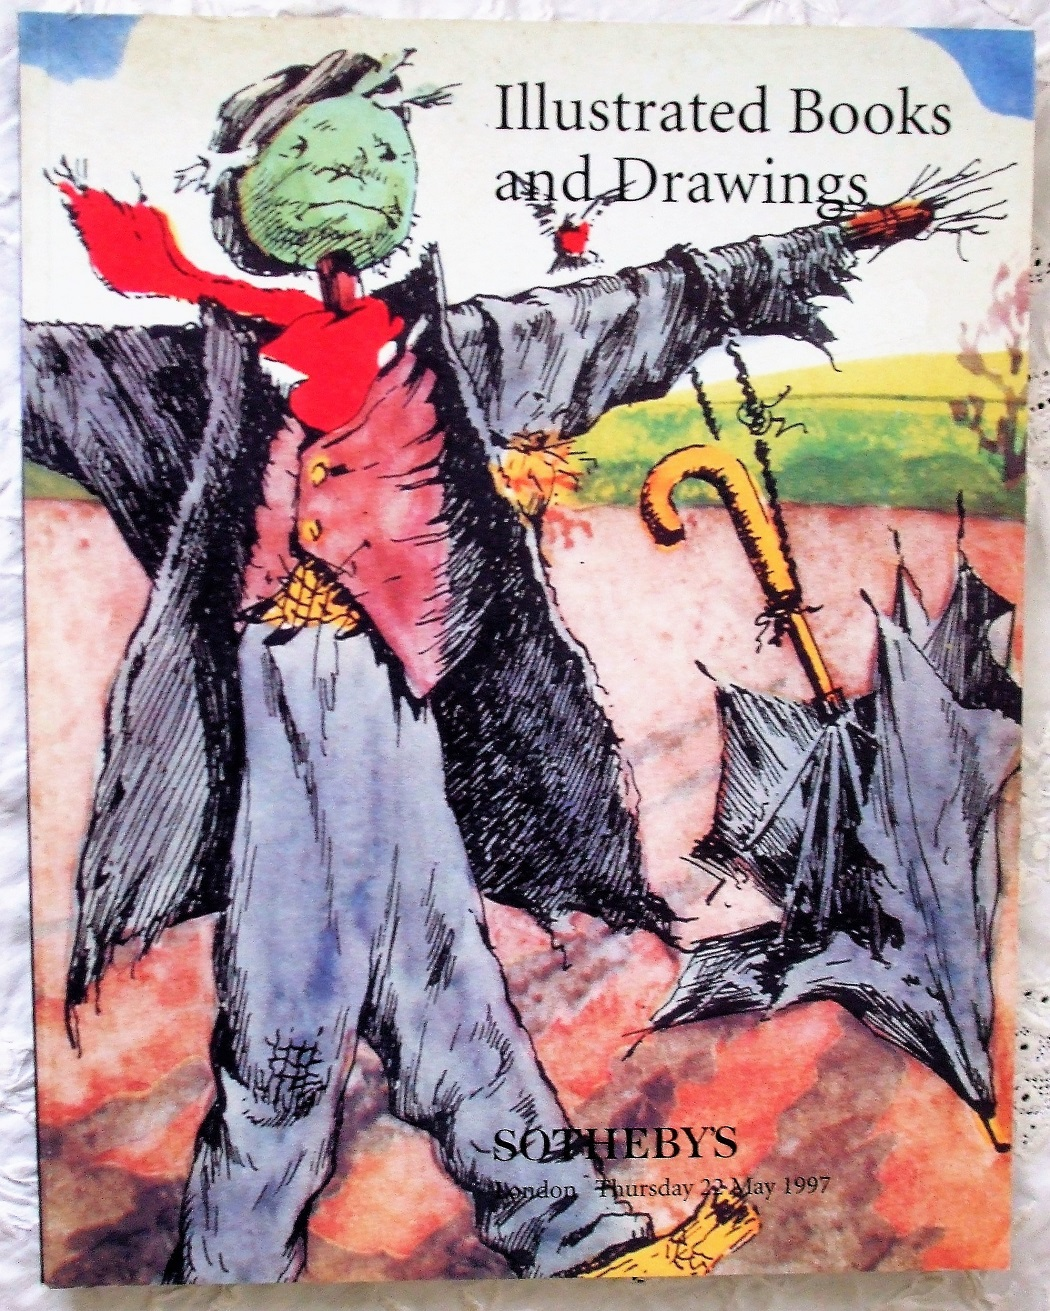 S PUFFIN Illustrated Books and Drawings L 22. 05. 1997